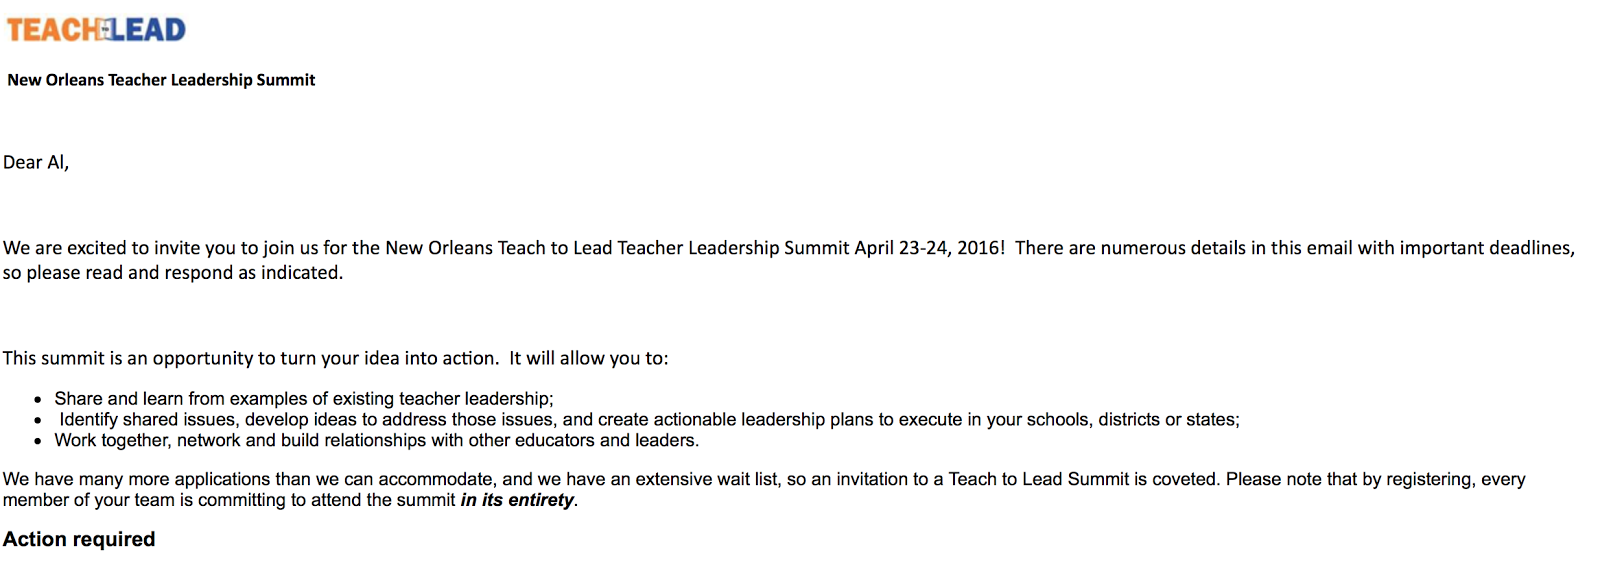 Cultivating Teacher Leaders Teachherpleaseblogspotcom Last March My Team Was Selected To Participate In A Teach Lead Leadership Summit New Orleans